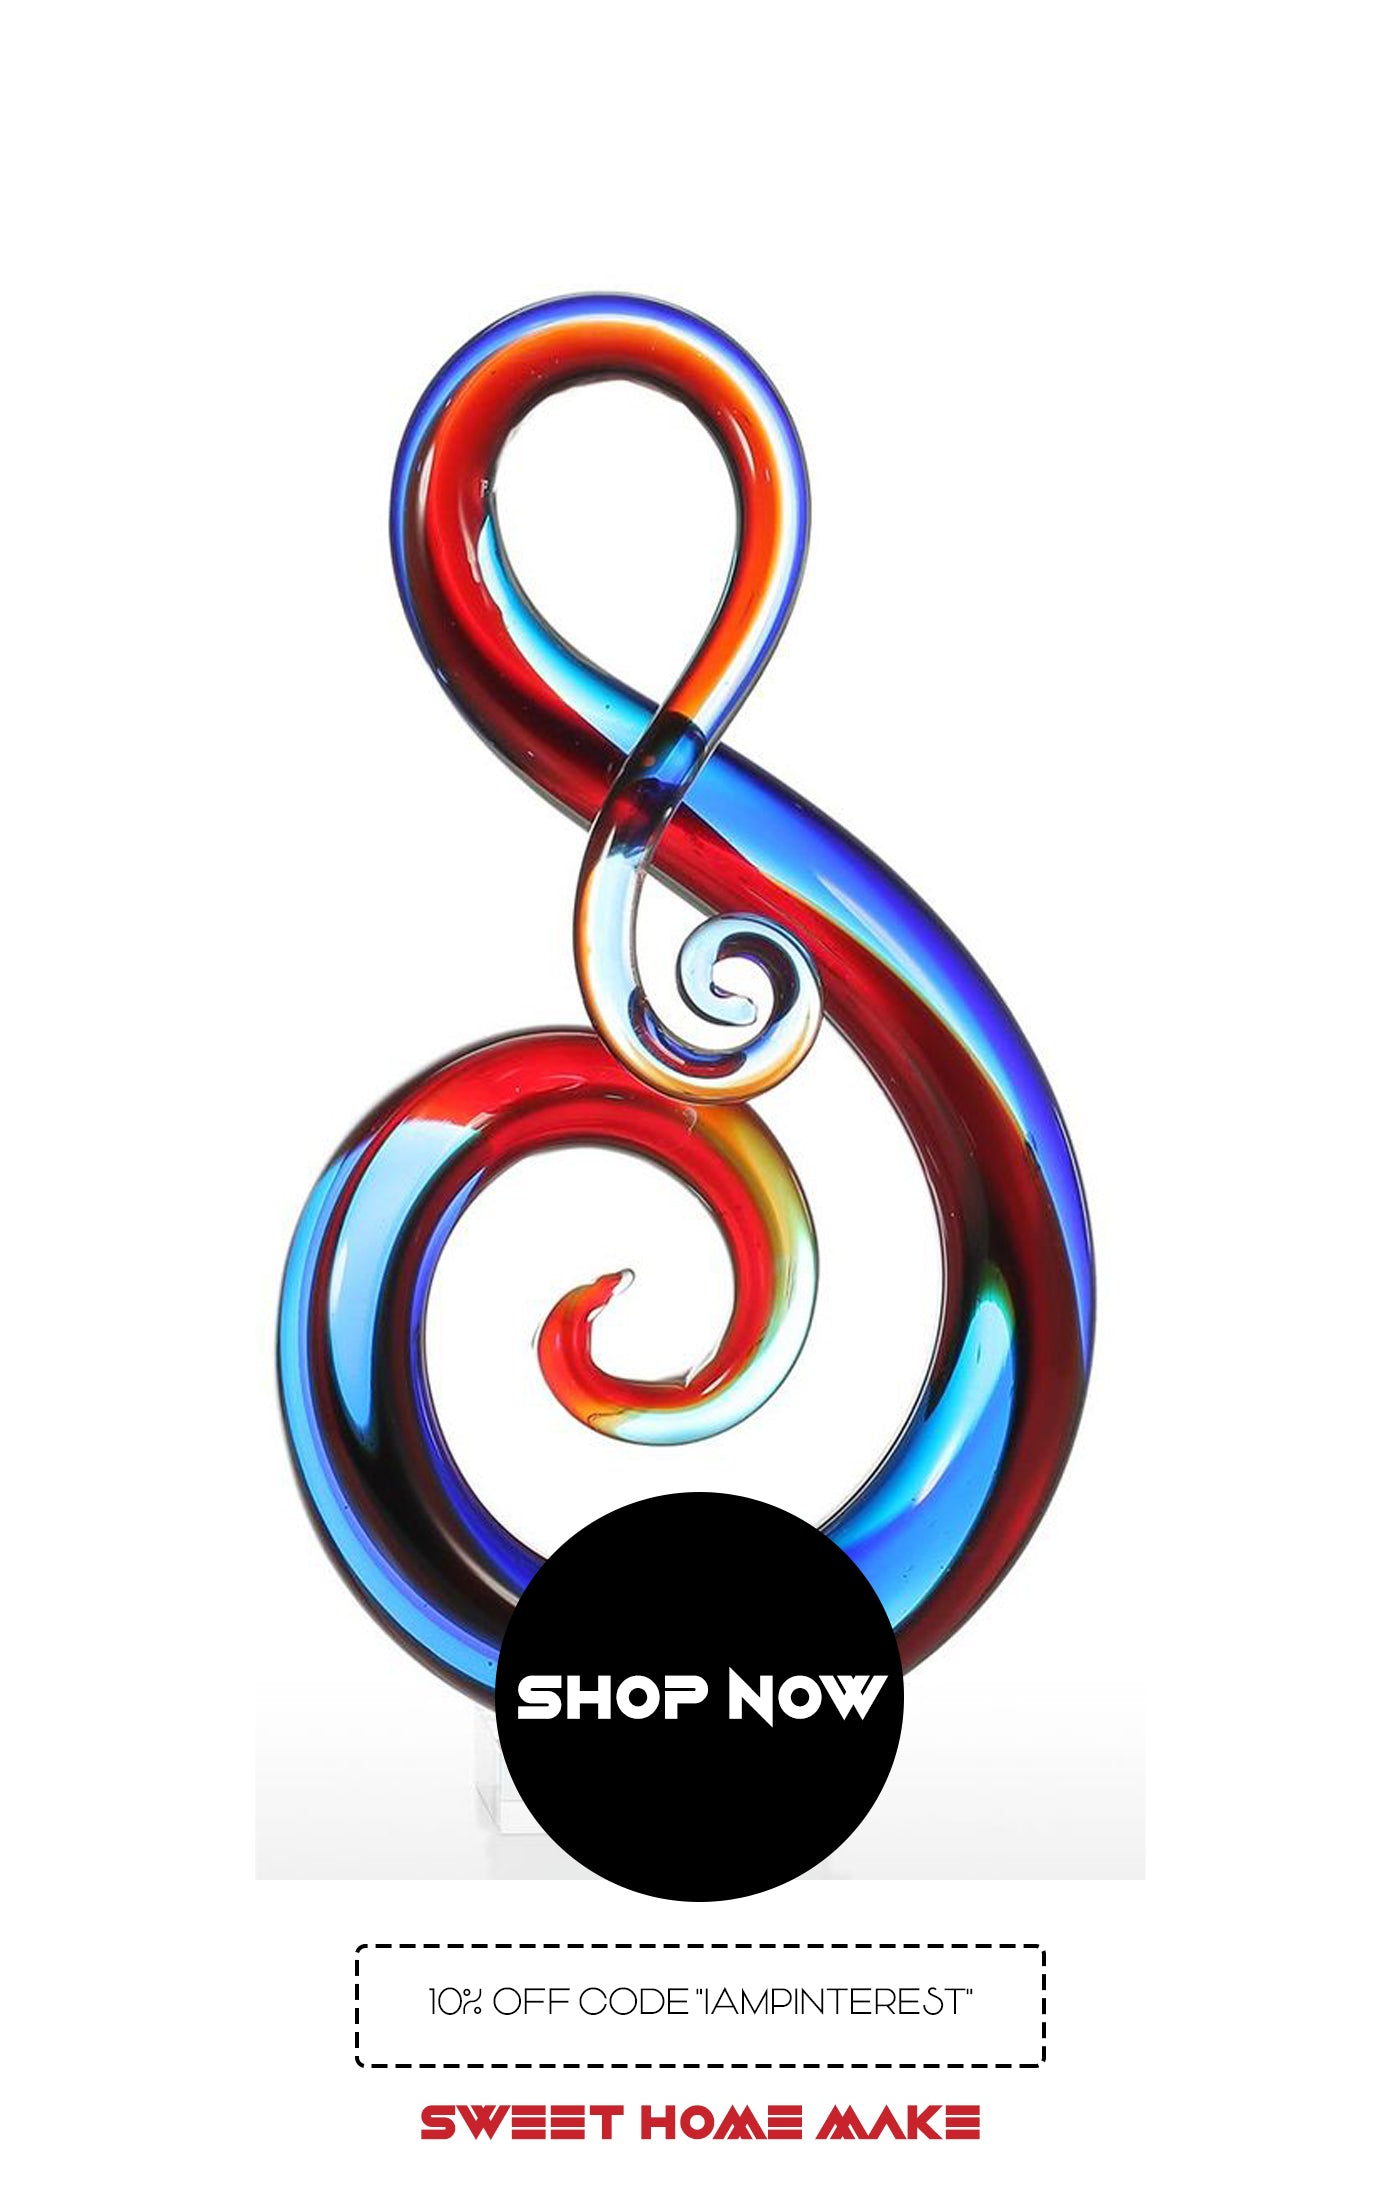 Music Note Symbol Art Glass Sculpture From Online Home Decor Store